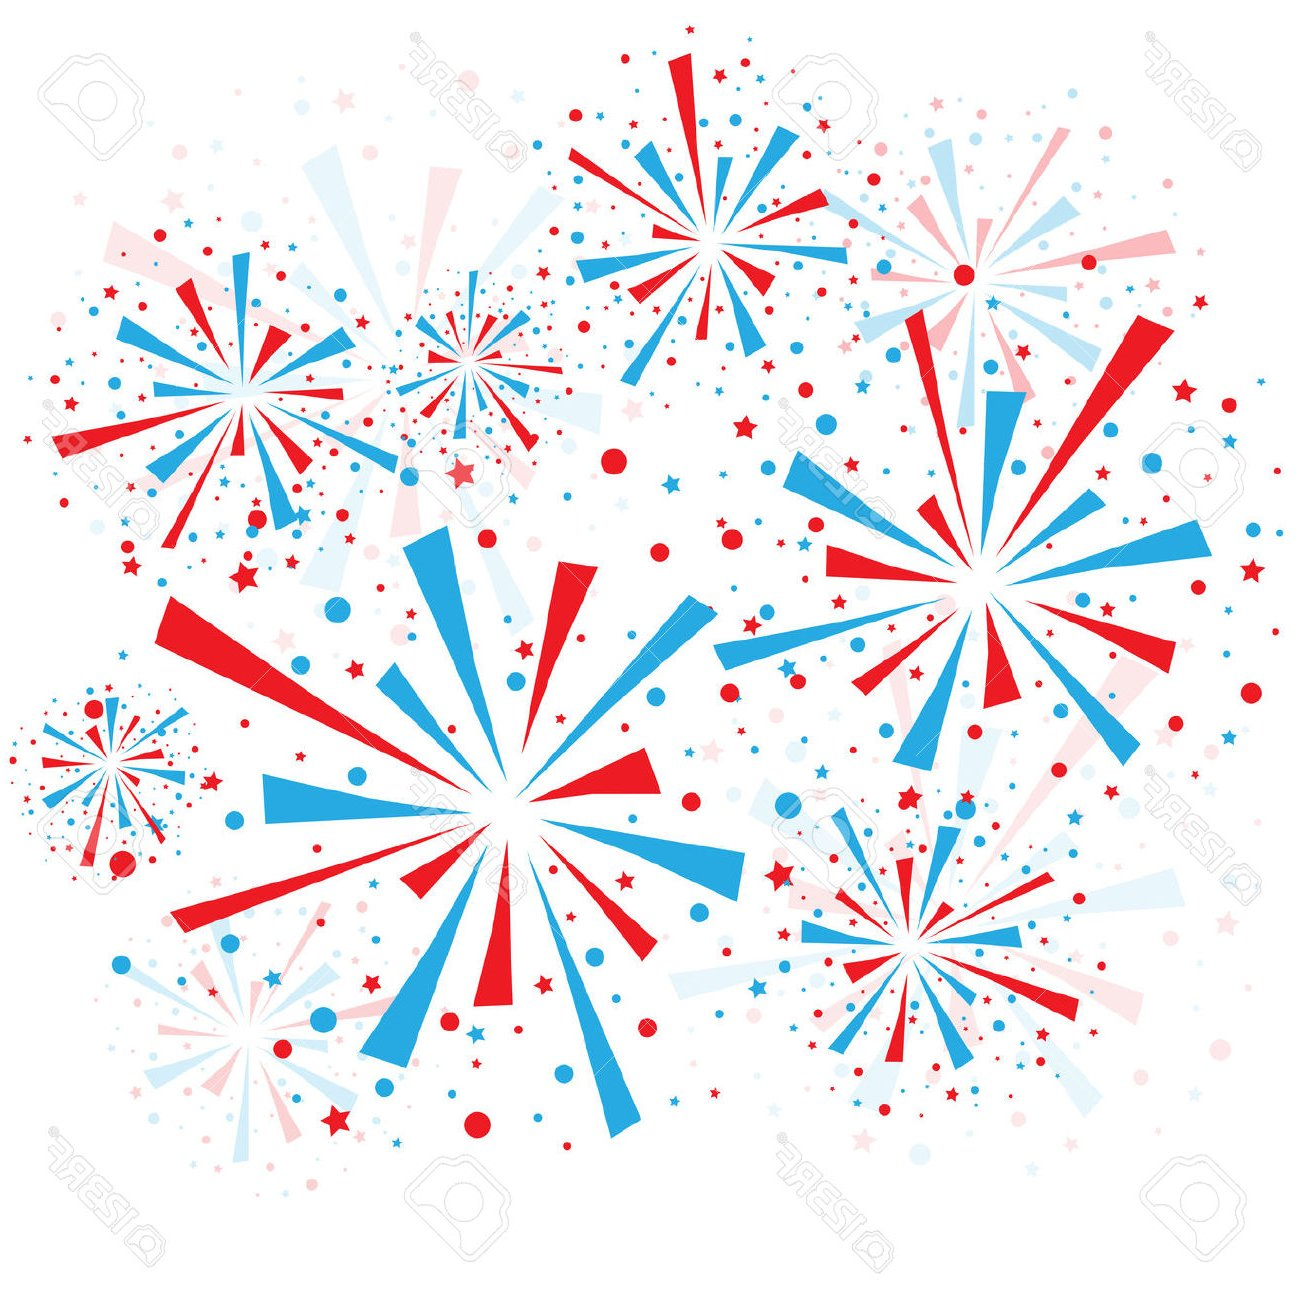 Firework red white blue. And fireworks png free